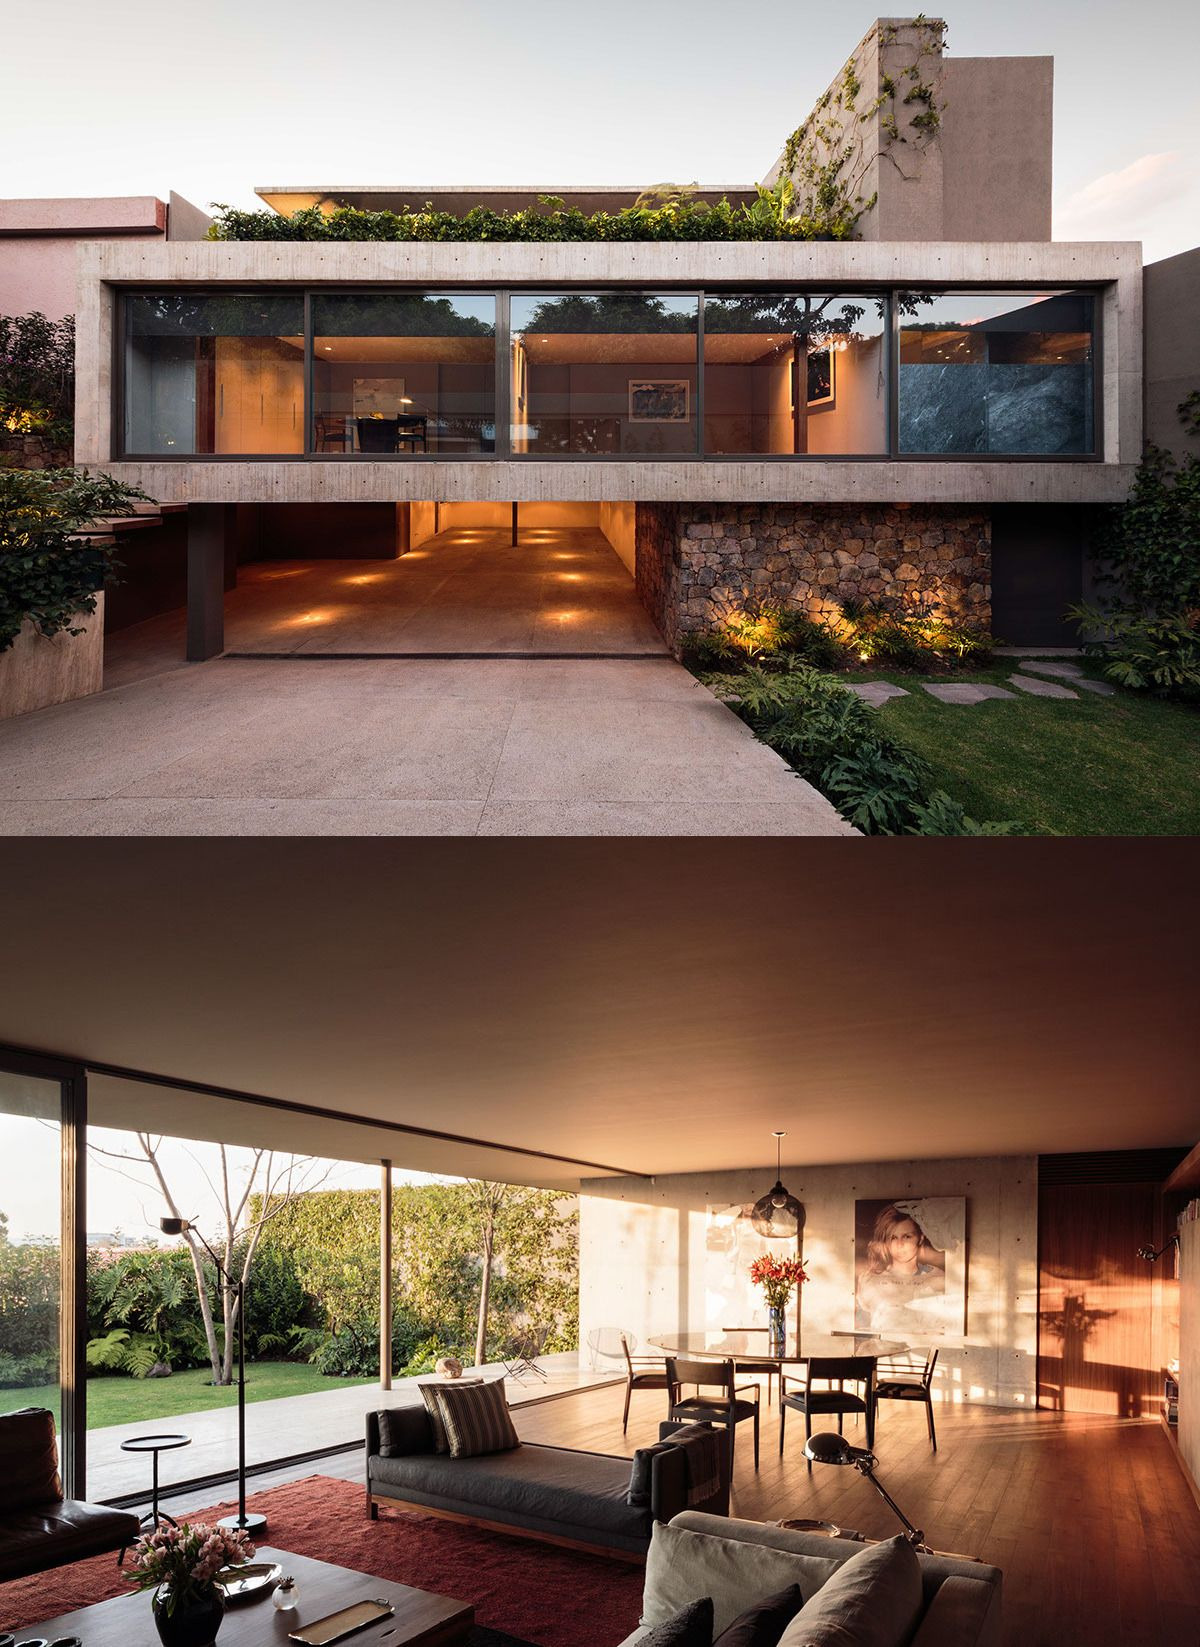 Top 10 House Designs In the World Unique Home Designing